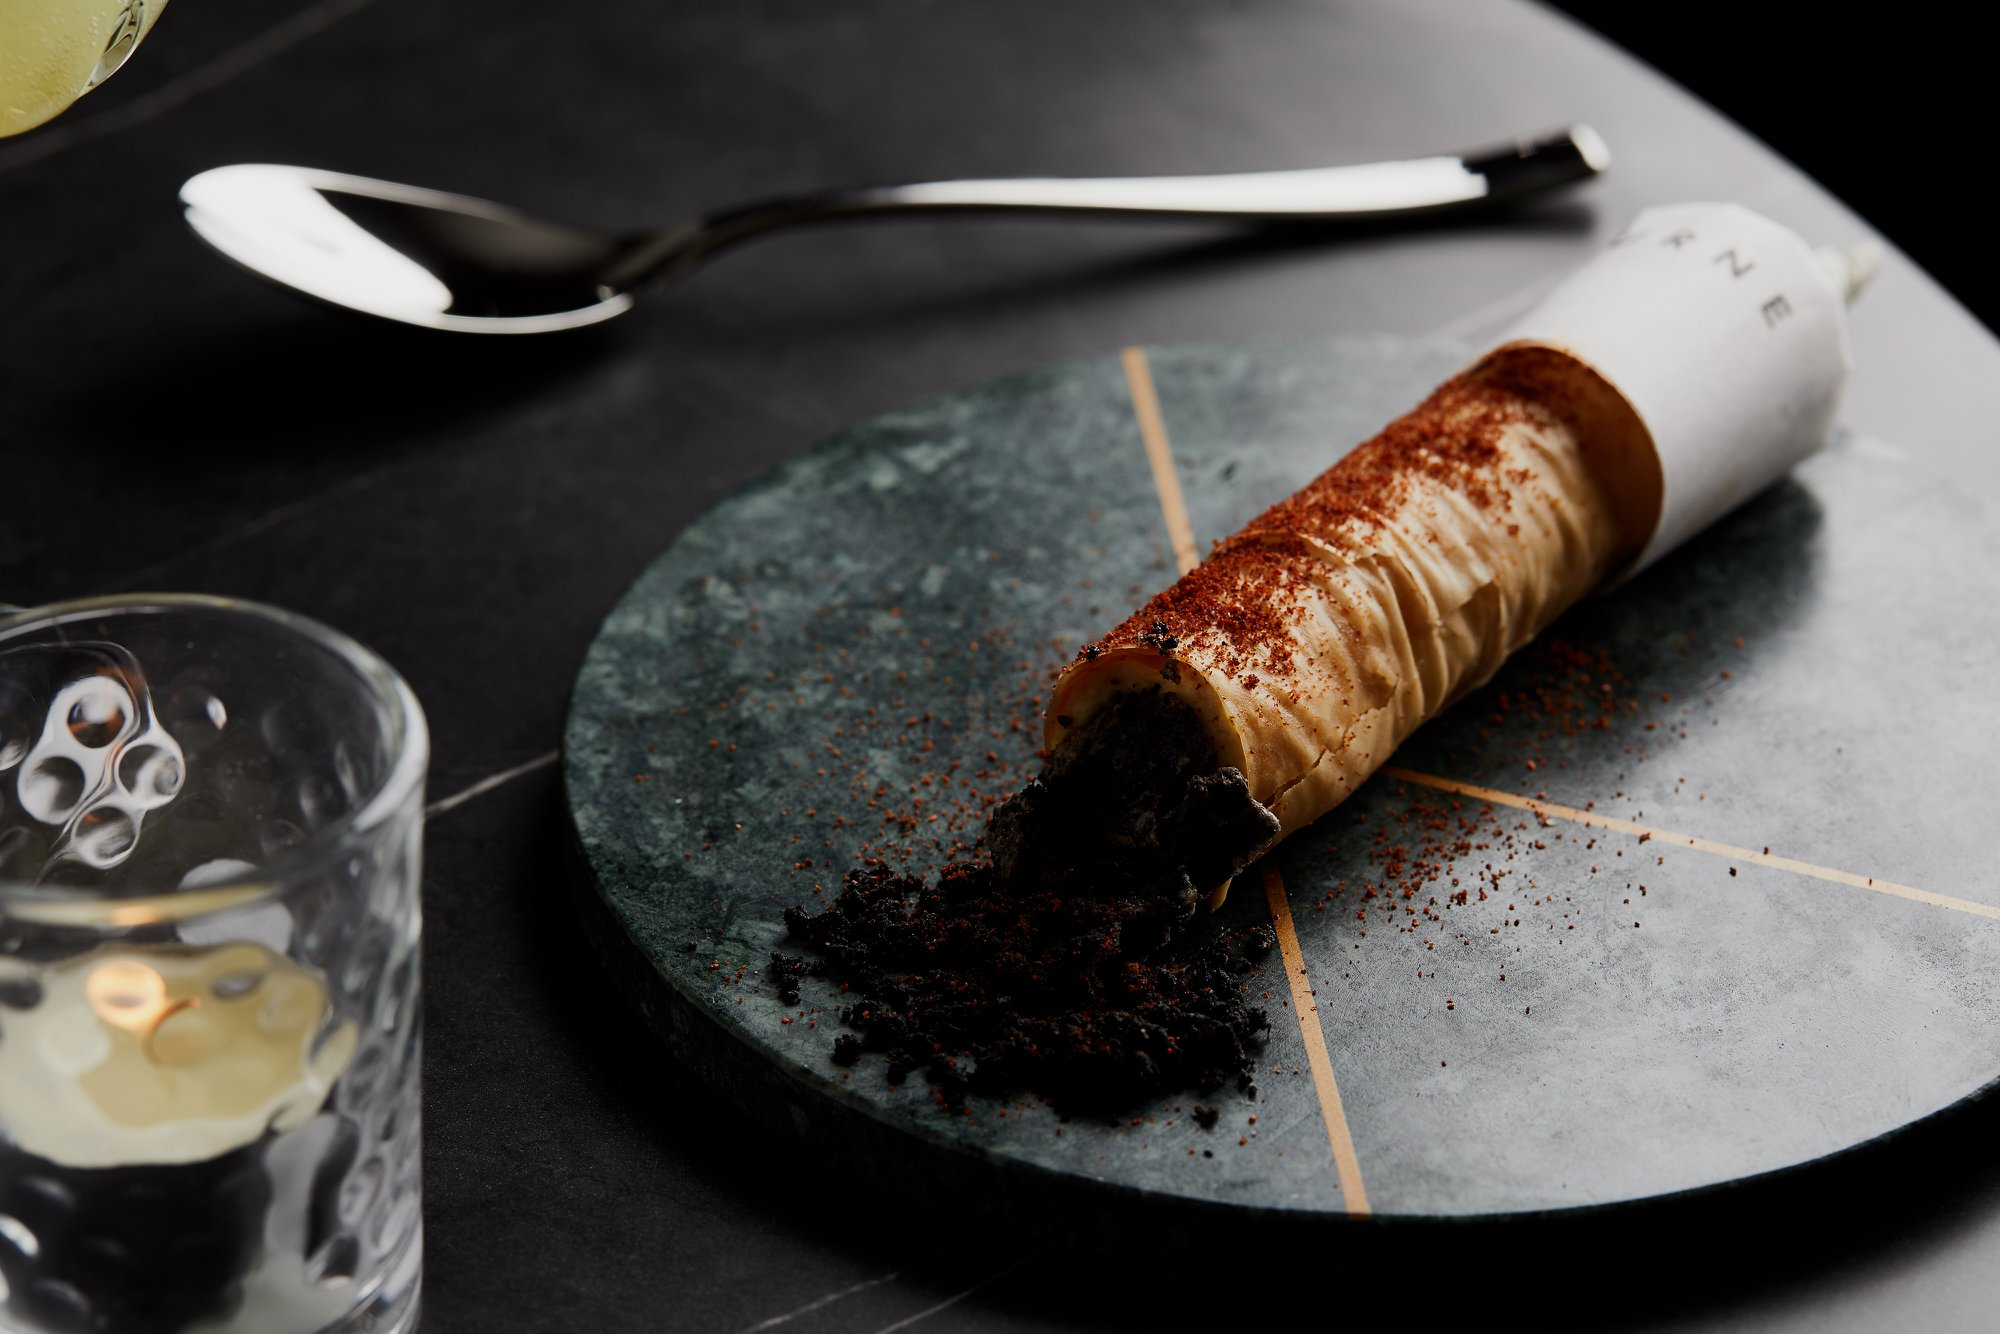 Dish-Smoked Hummus Cigar  stuffed with smoked paprika and served with a capsicum reduction.jpg